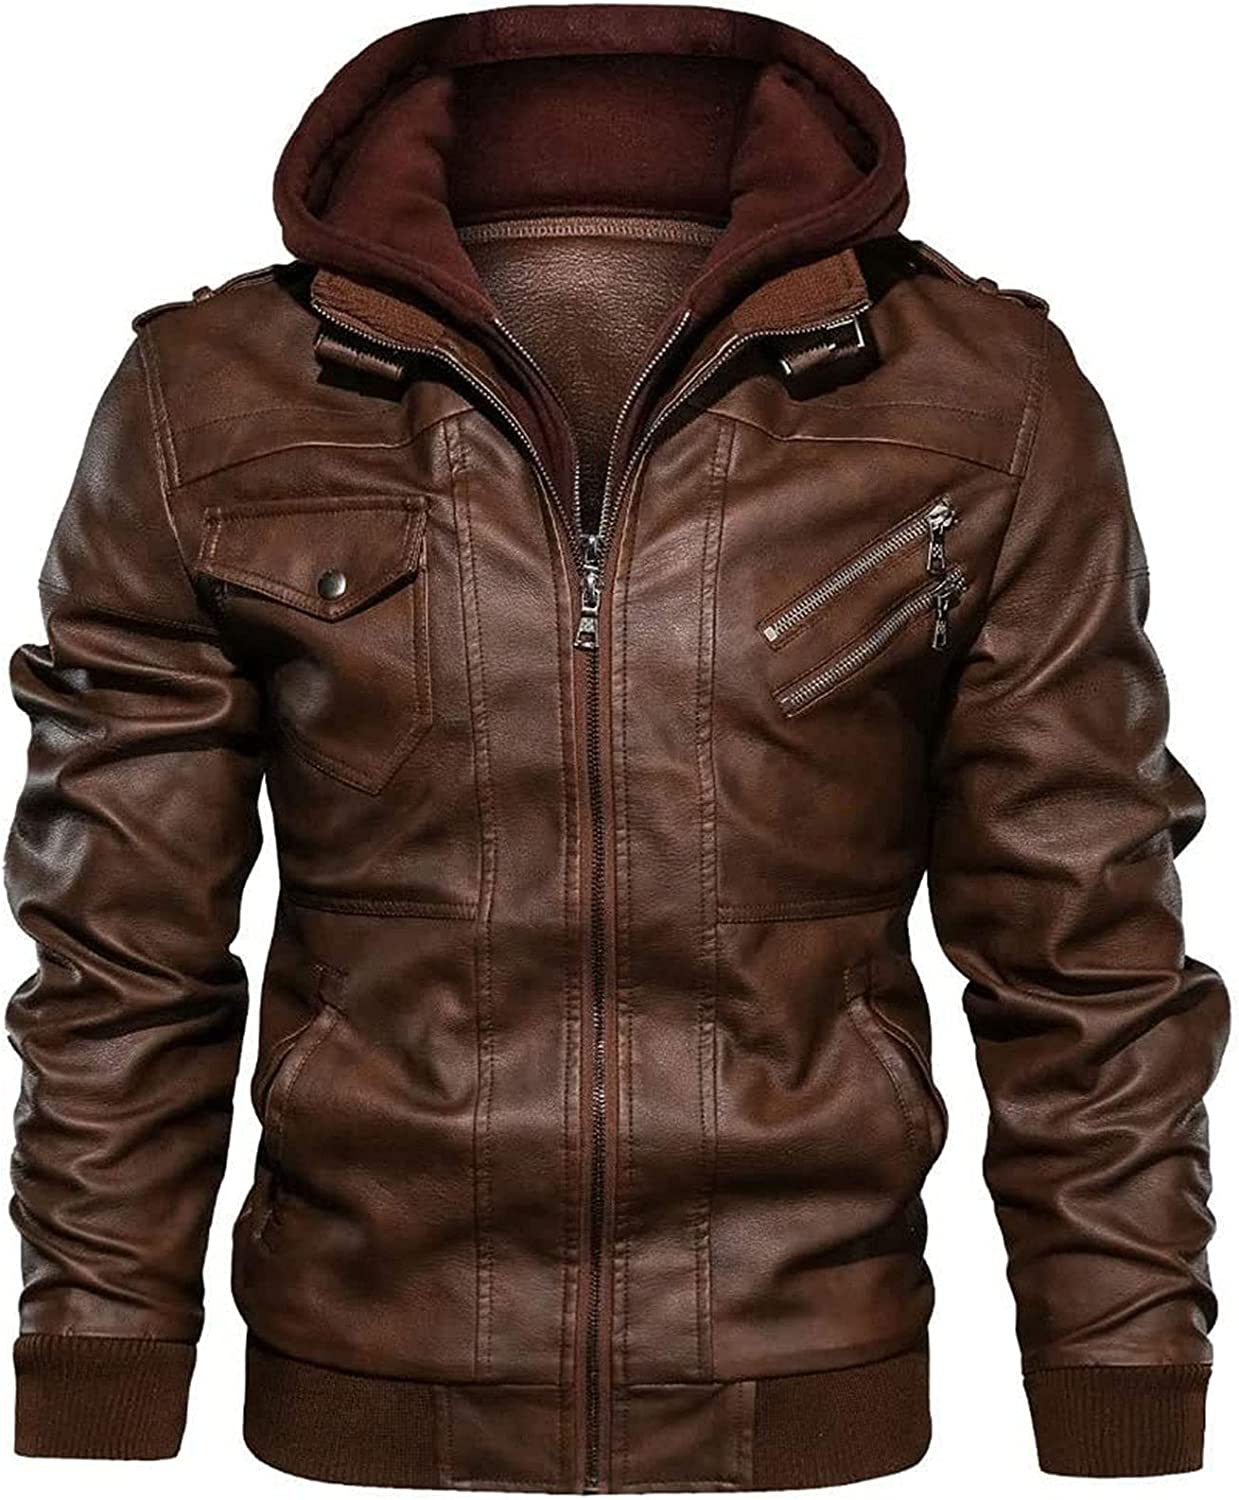 CAICAIL Casual Leather Jacket Men Autumn famous Zipper Slim Free Shipping New PU